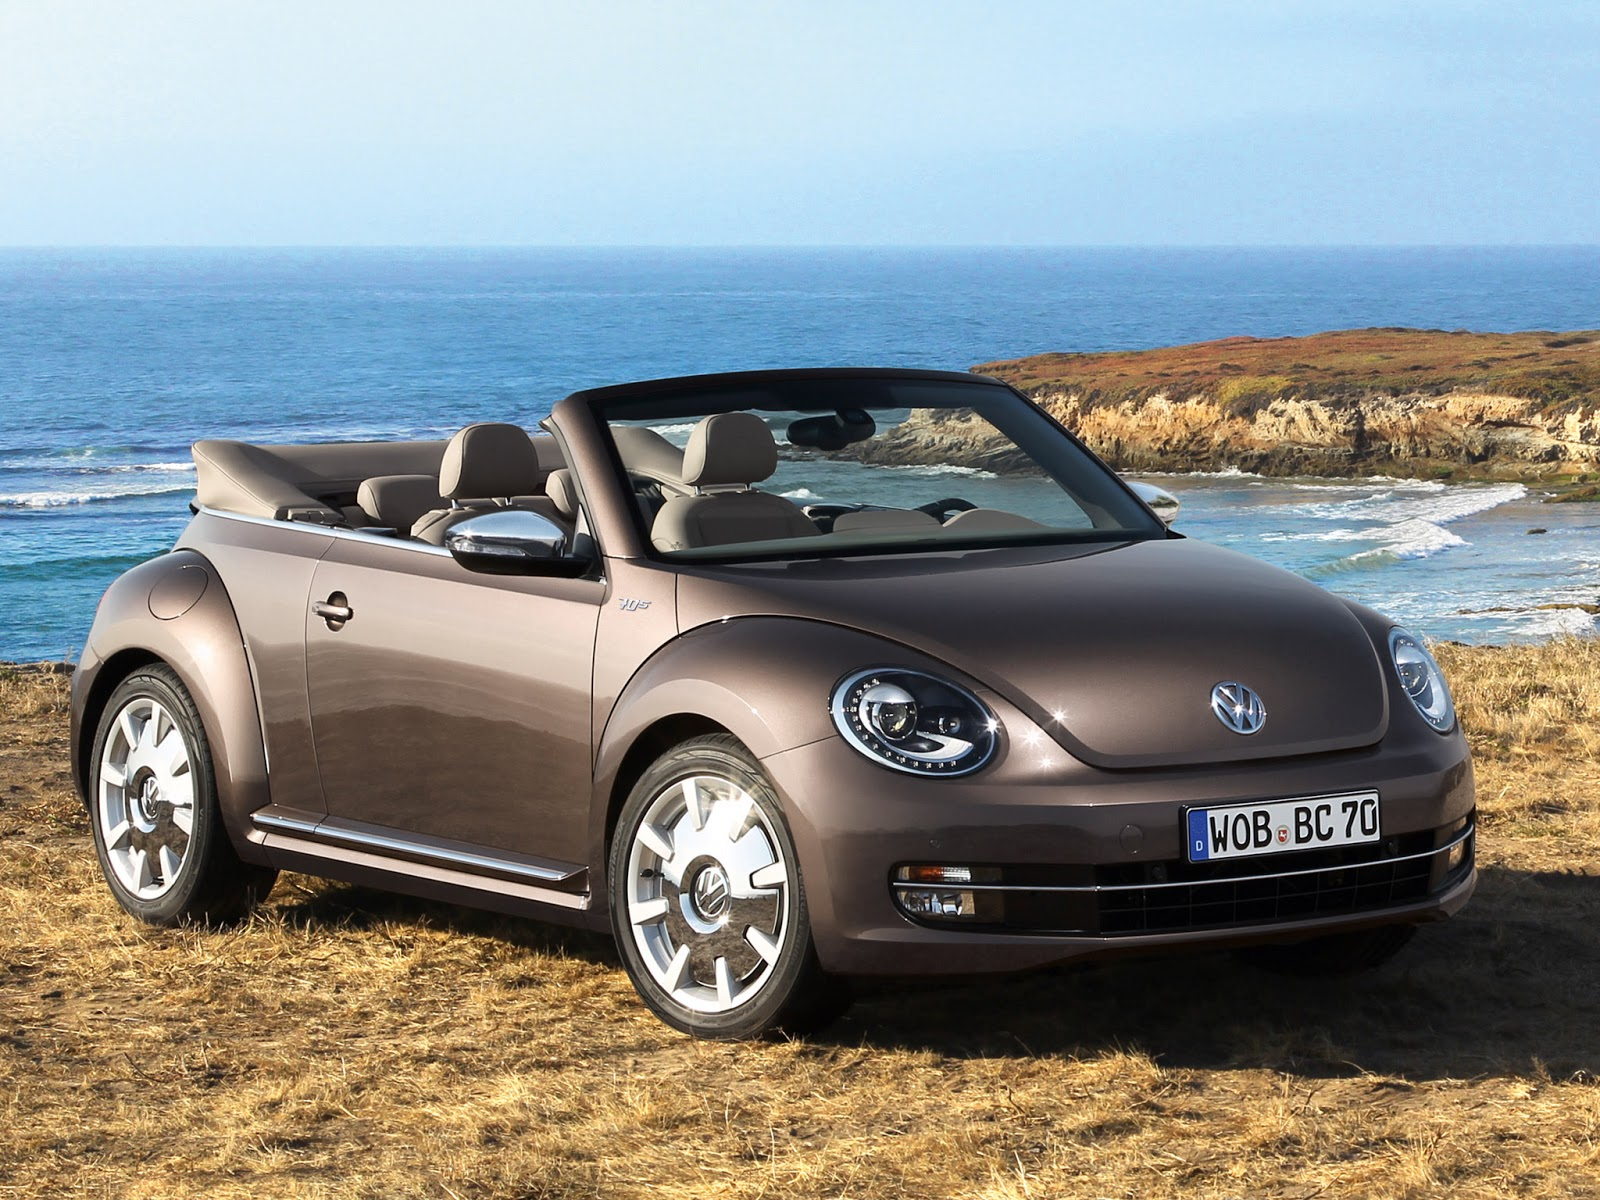 New Car Review: 2013 Volkswagen Beetle Convertible 70s Edition - cars